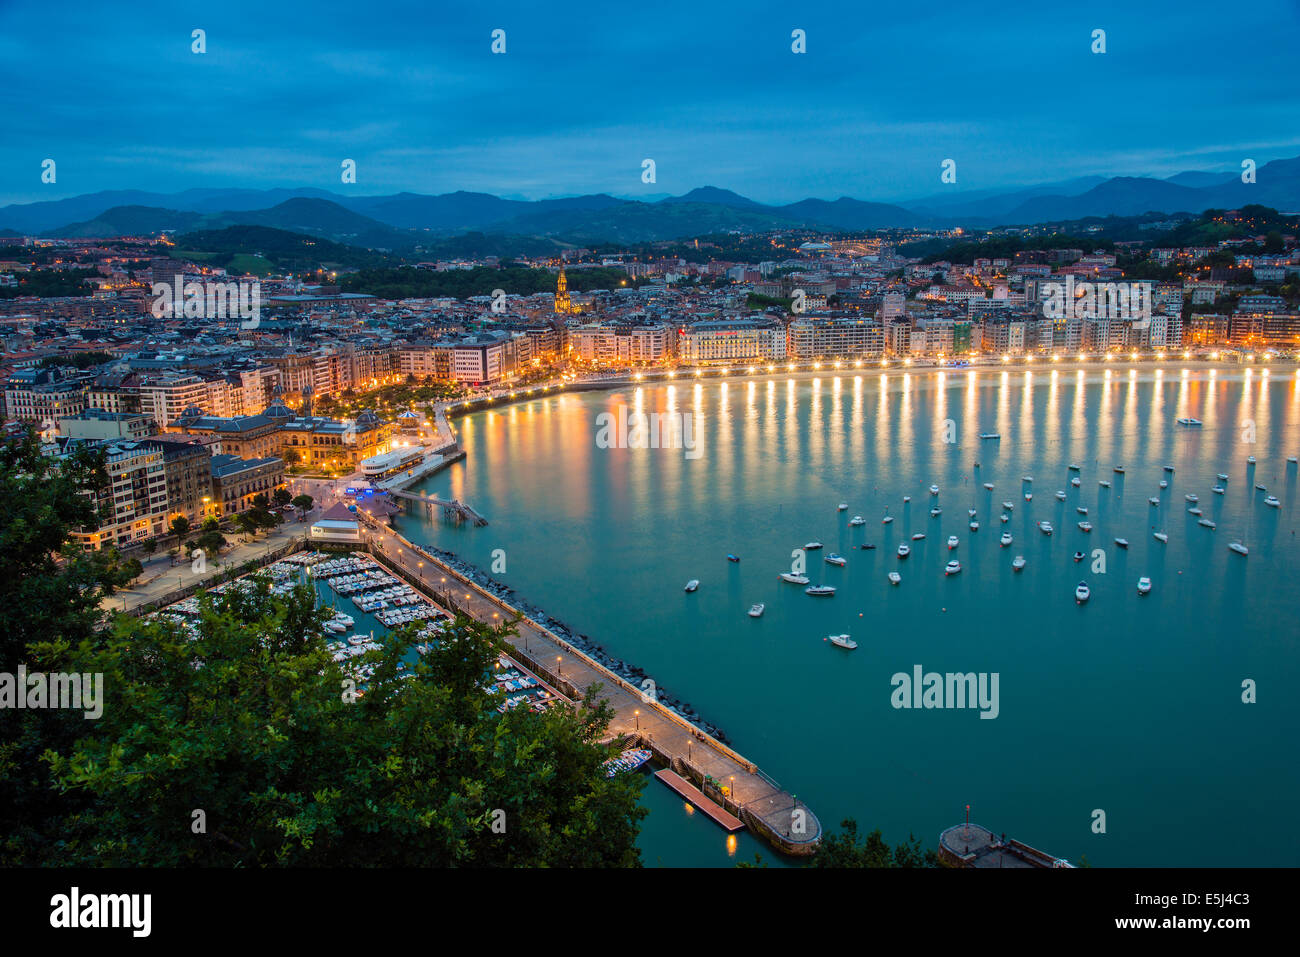 City skyline with Bahia de la Concha, Donostia San ...